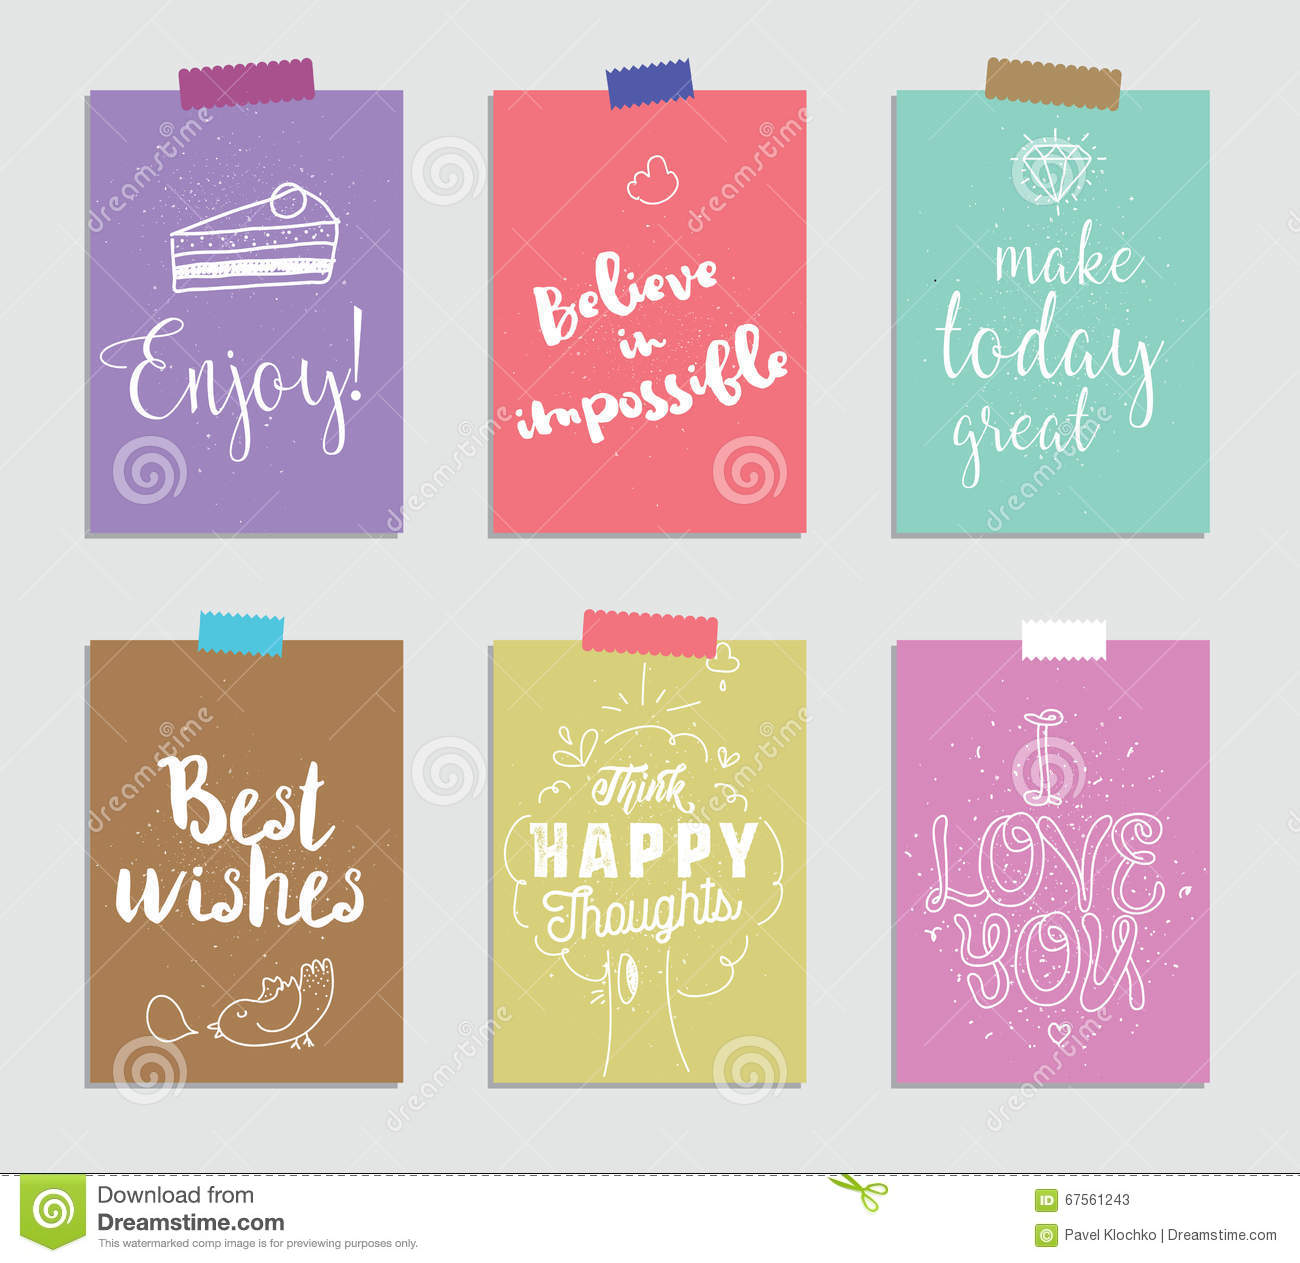 Set of creative 6 journaling cards. Vector illustration. Template for greeting scrapbooking, planner, congratulations